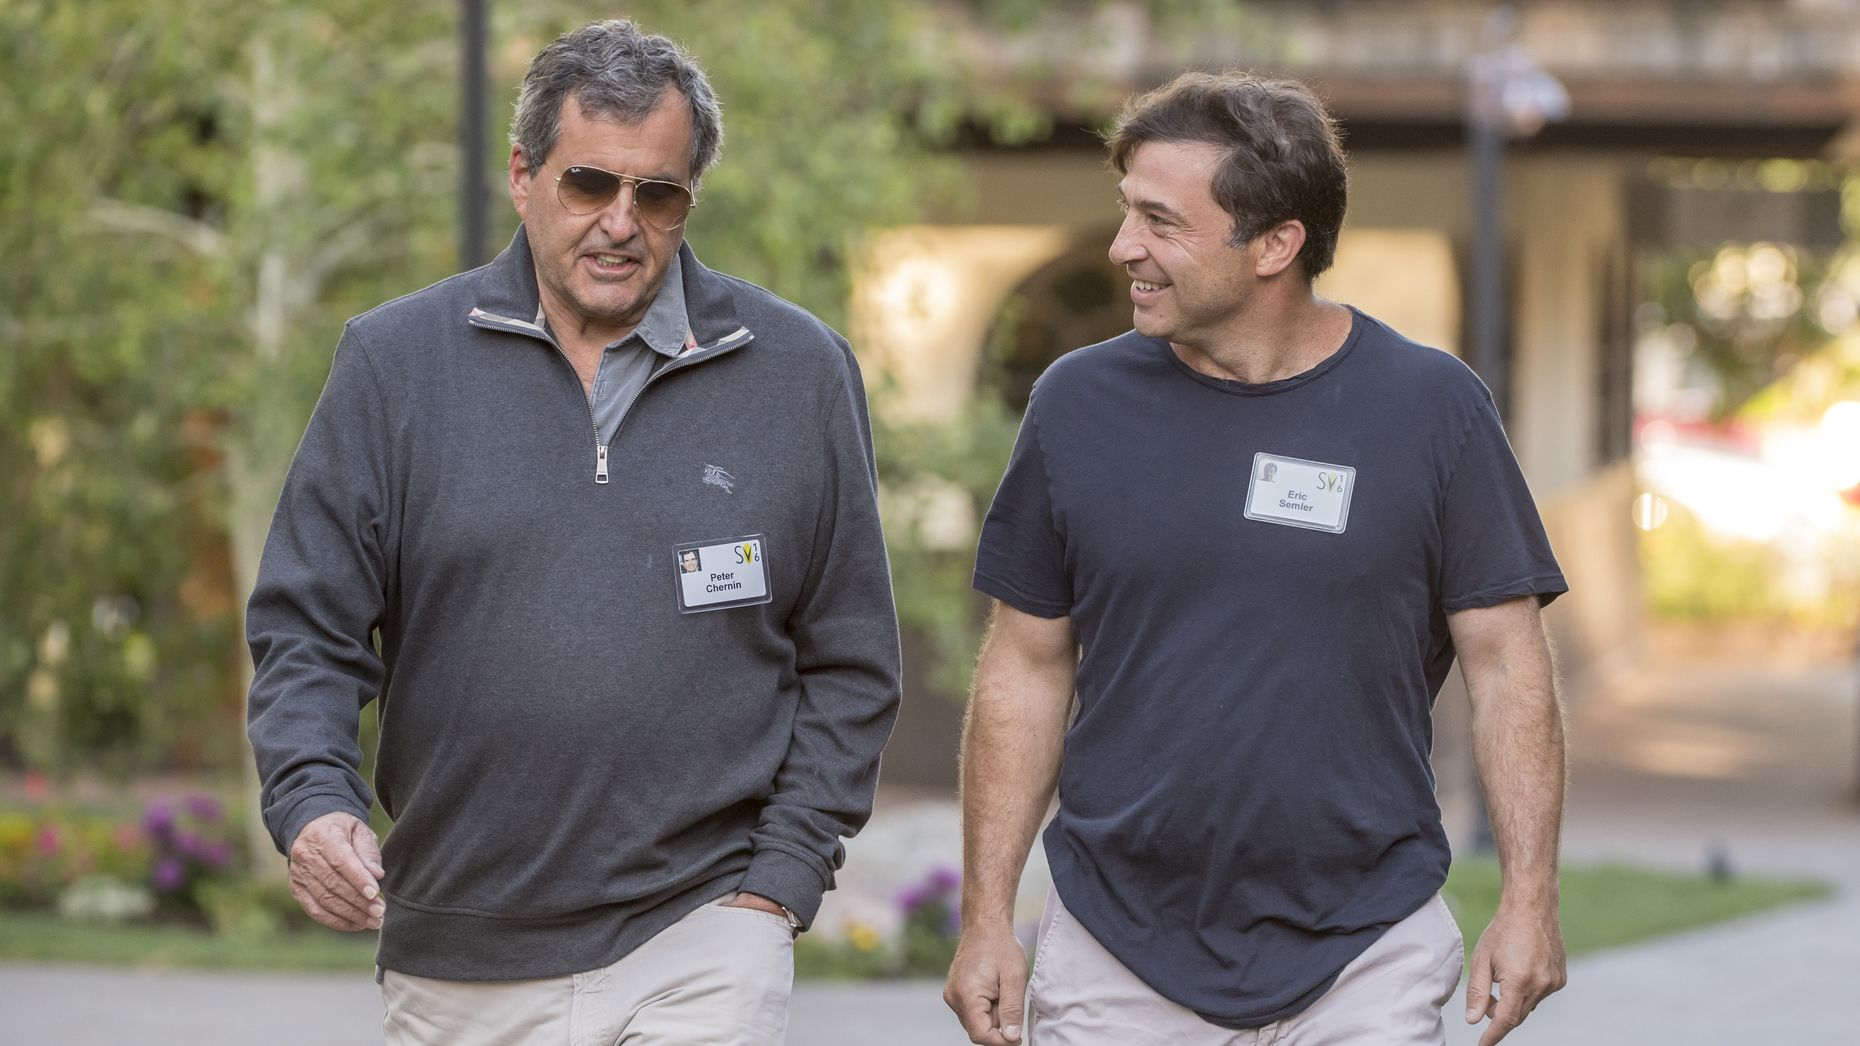 Peter Chernin, left, with investor Eric Semler at the Allen & Co Sun Valley conference in 2016. Photo by Bloomberg